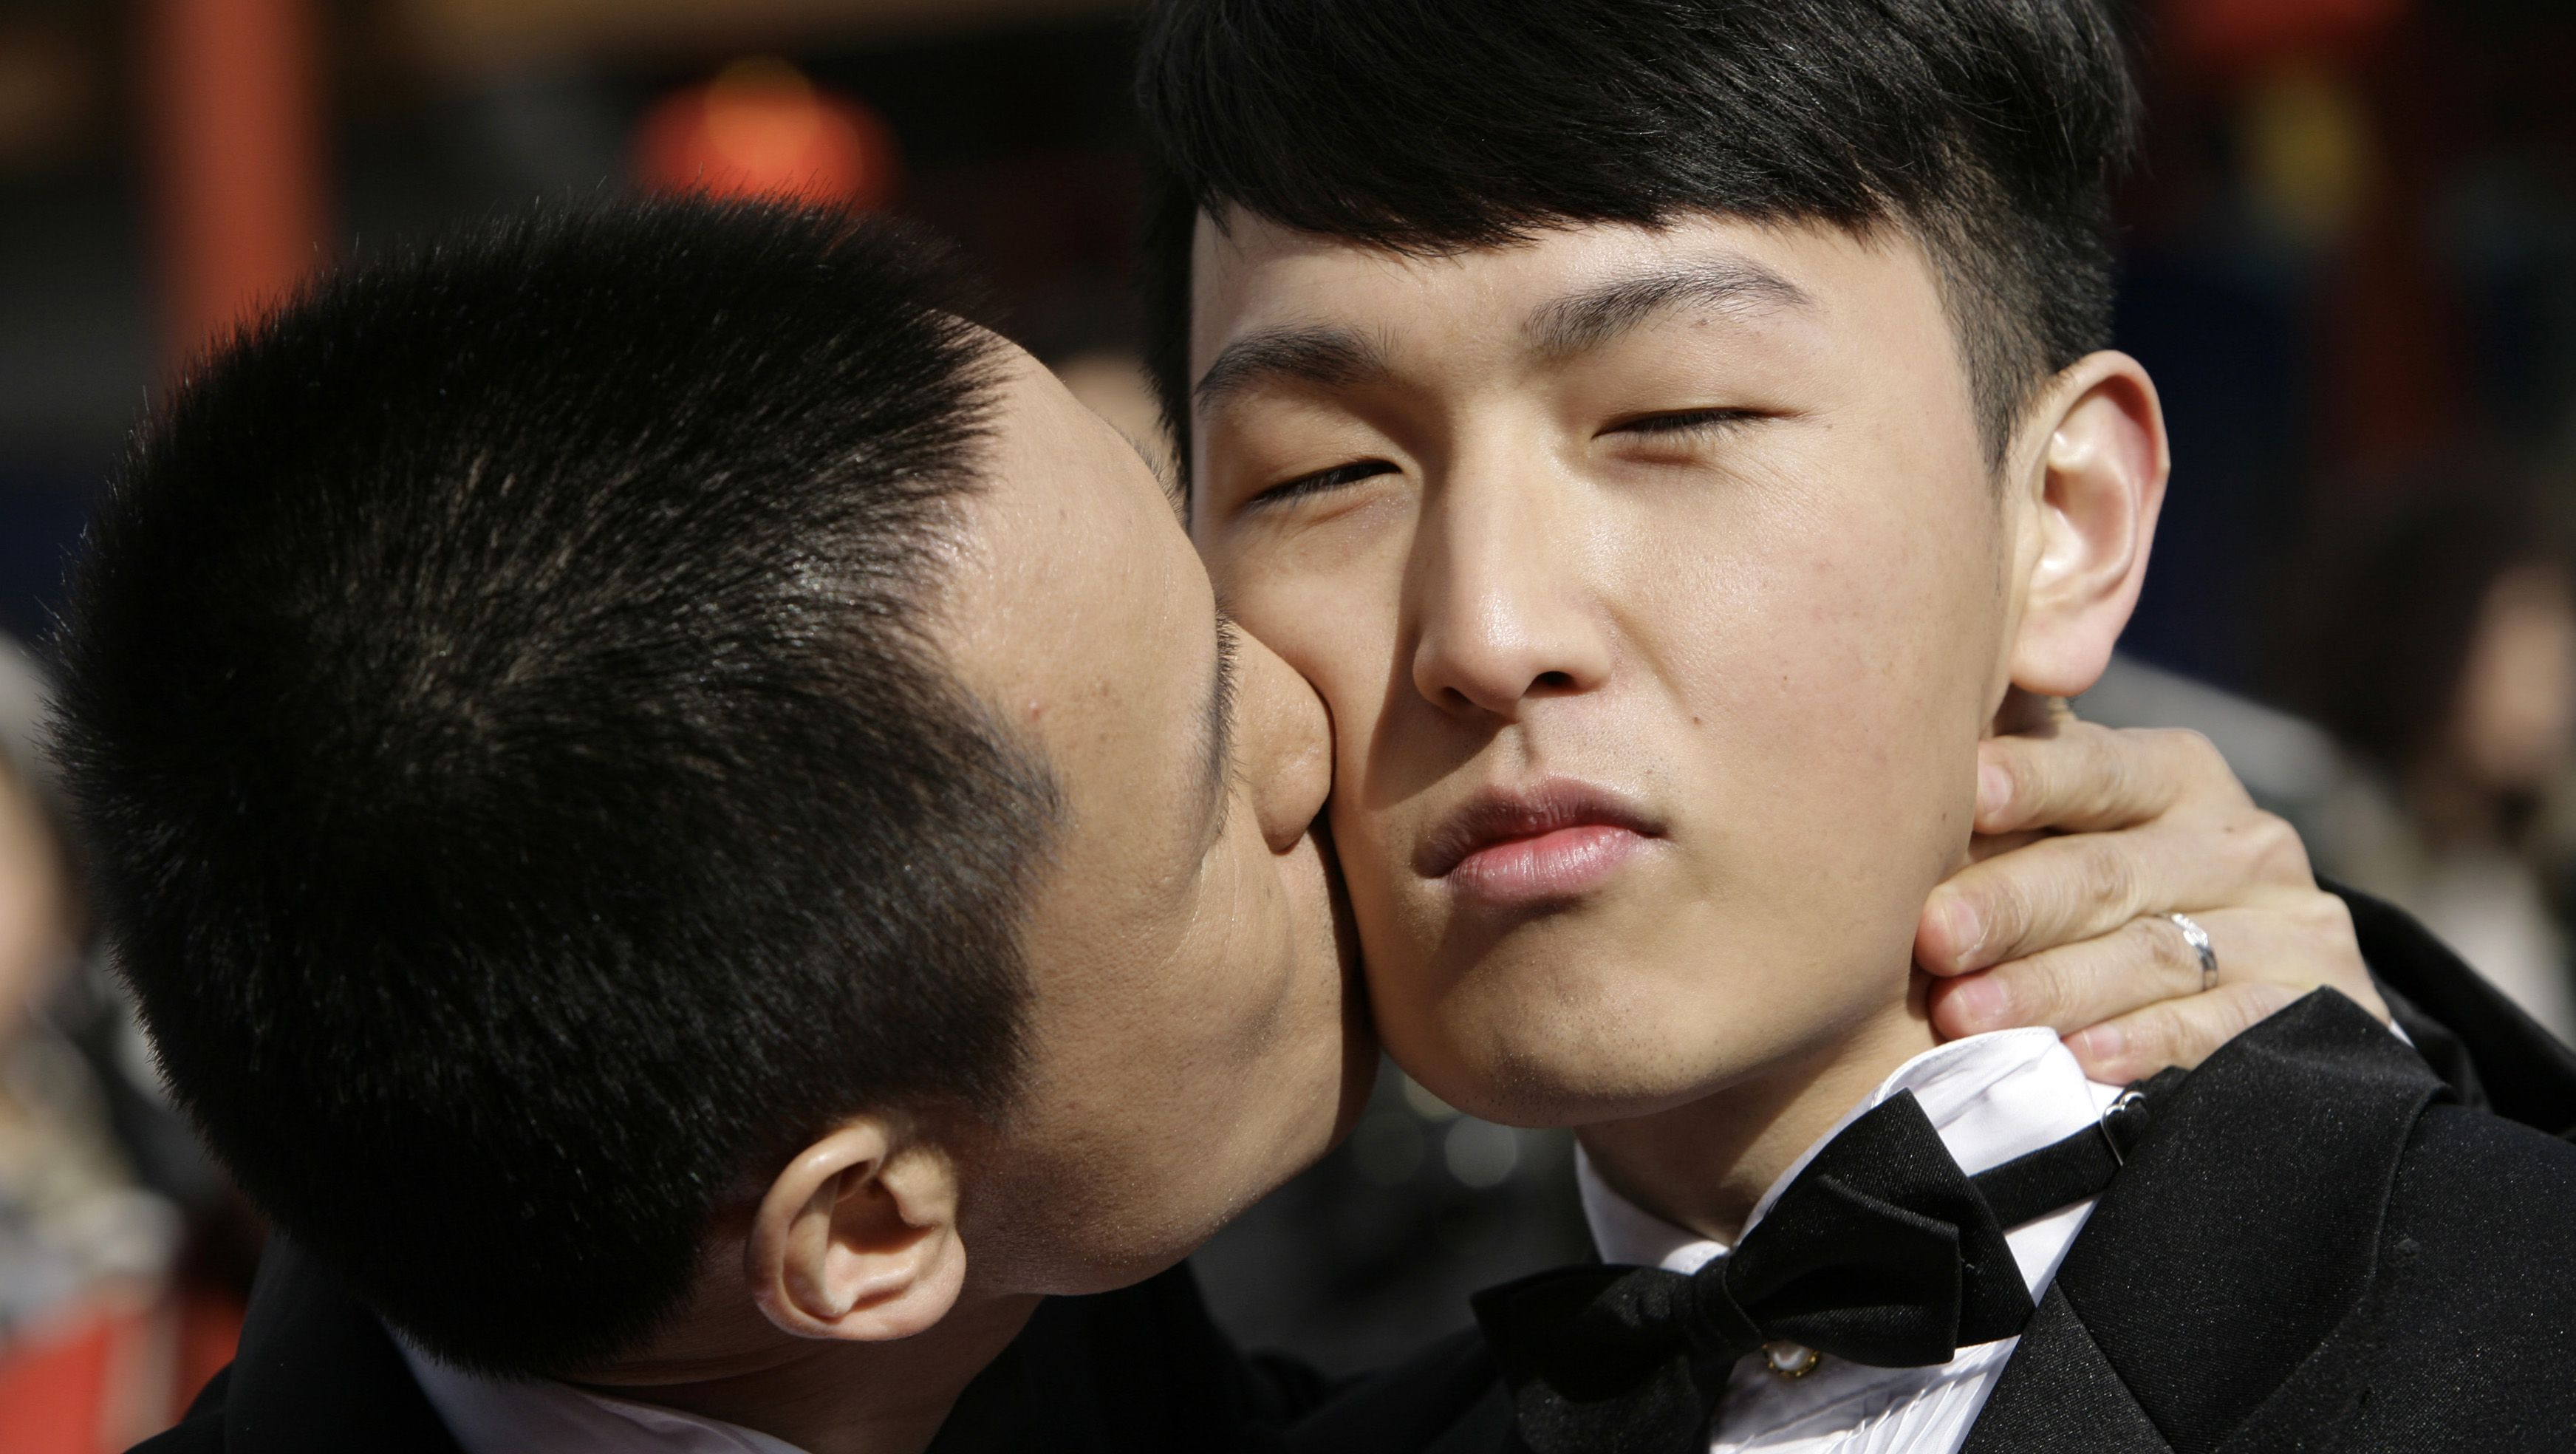 Zhang Yi (L) kisses Hai Bei as the same-sex couple pose for their wedding photographs at Qianmen street on Valentine's Day in Beijing February 14, 2009. For some in Beijing's gay and lesbian community, Valentine's Day is not just a day to celebrate loving relationships but also an ideal time to campaign for same-sex marriages and the acceptance of homosexuality in China. REUTERS/Jason Lee